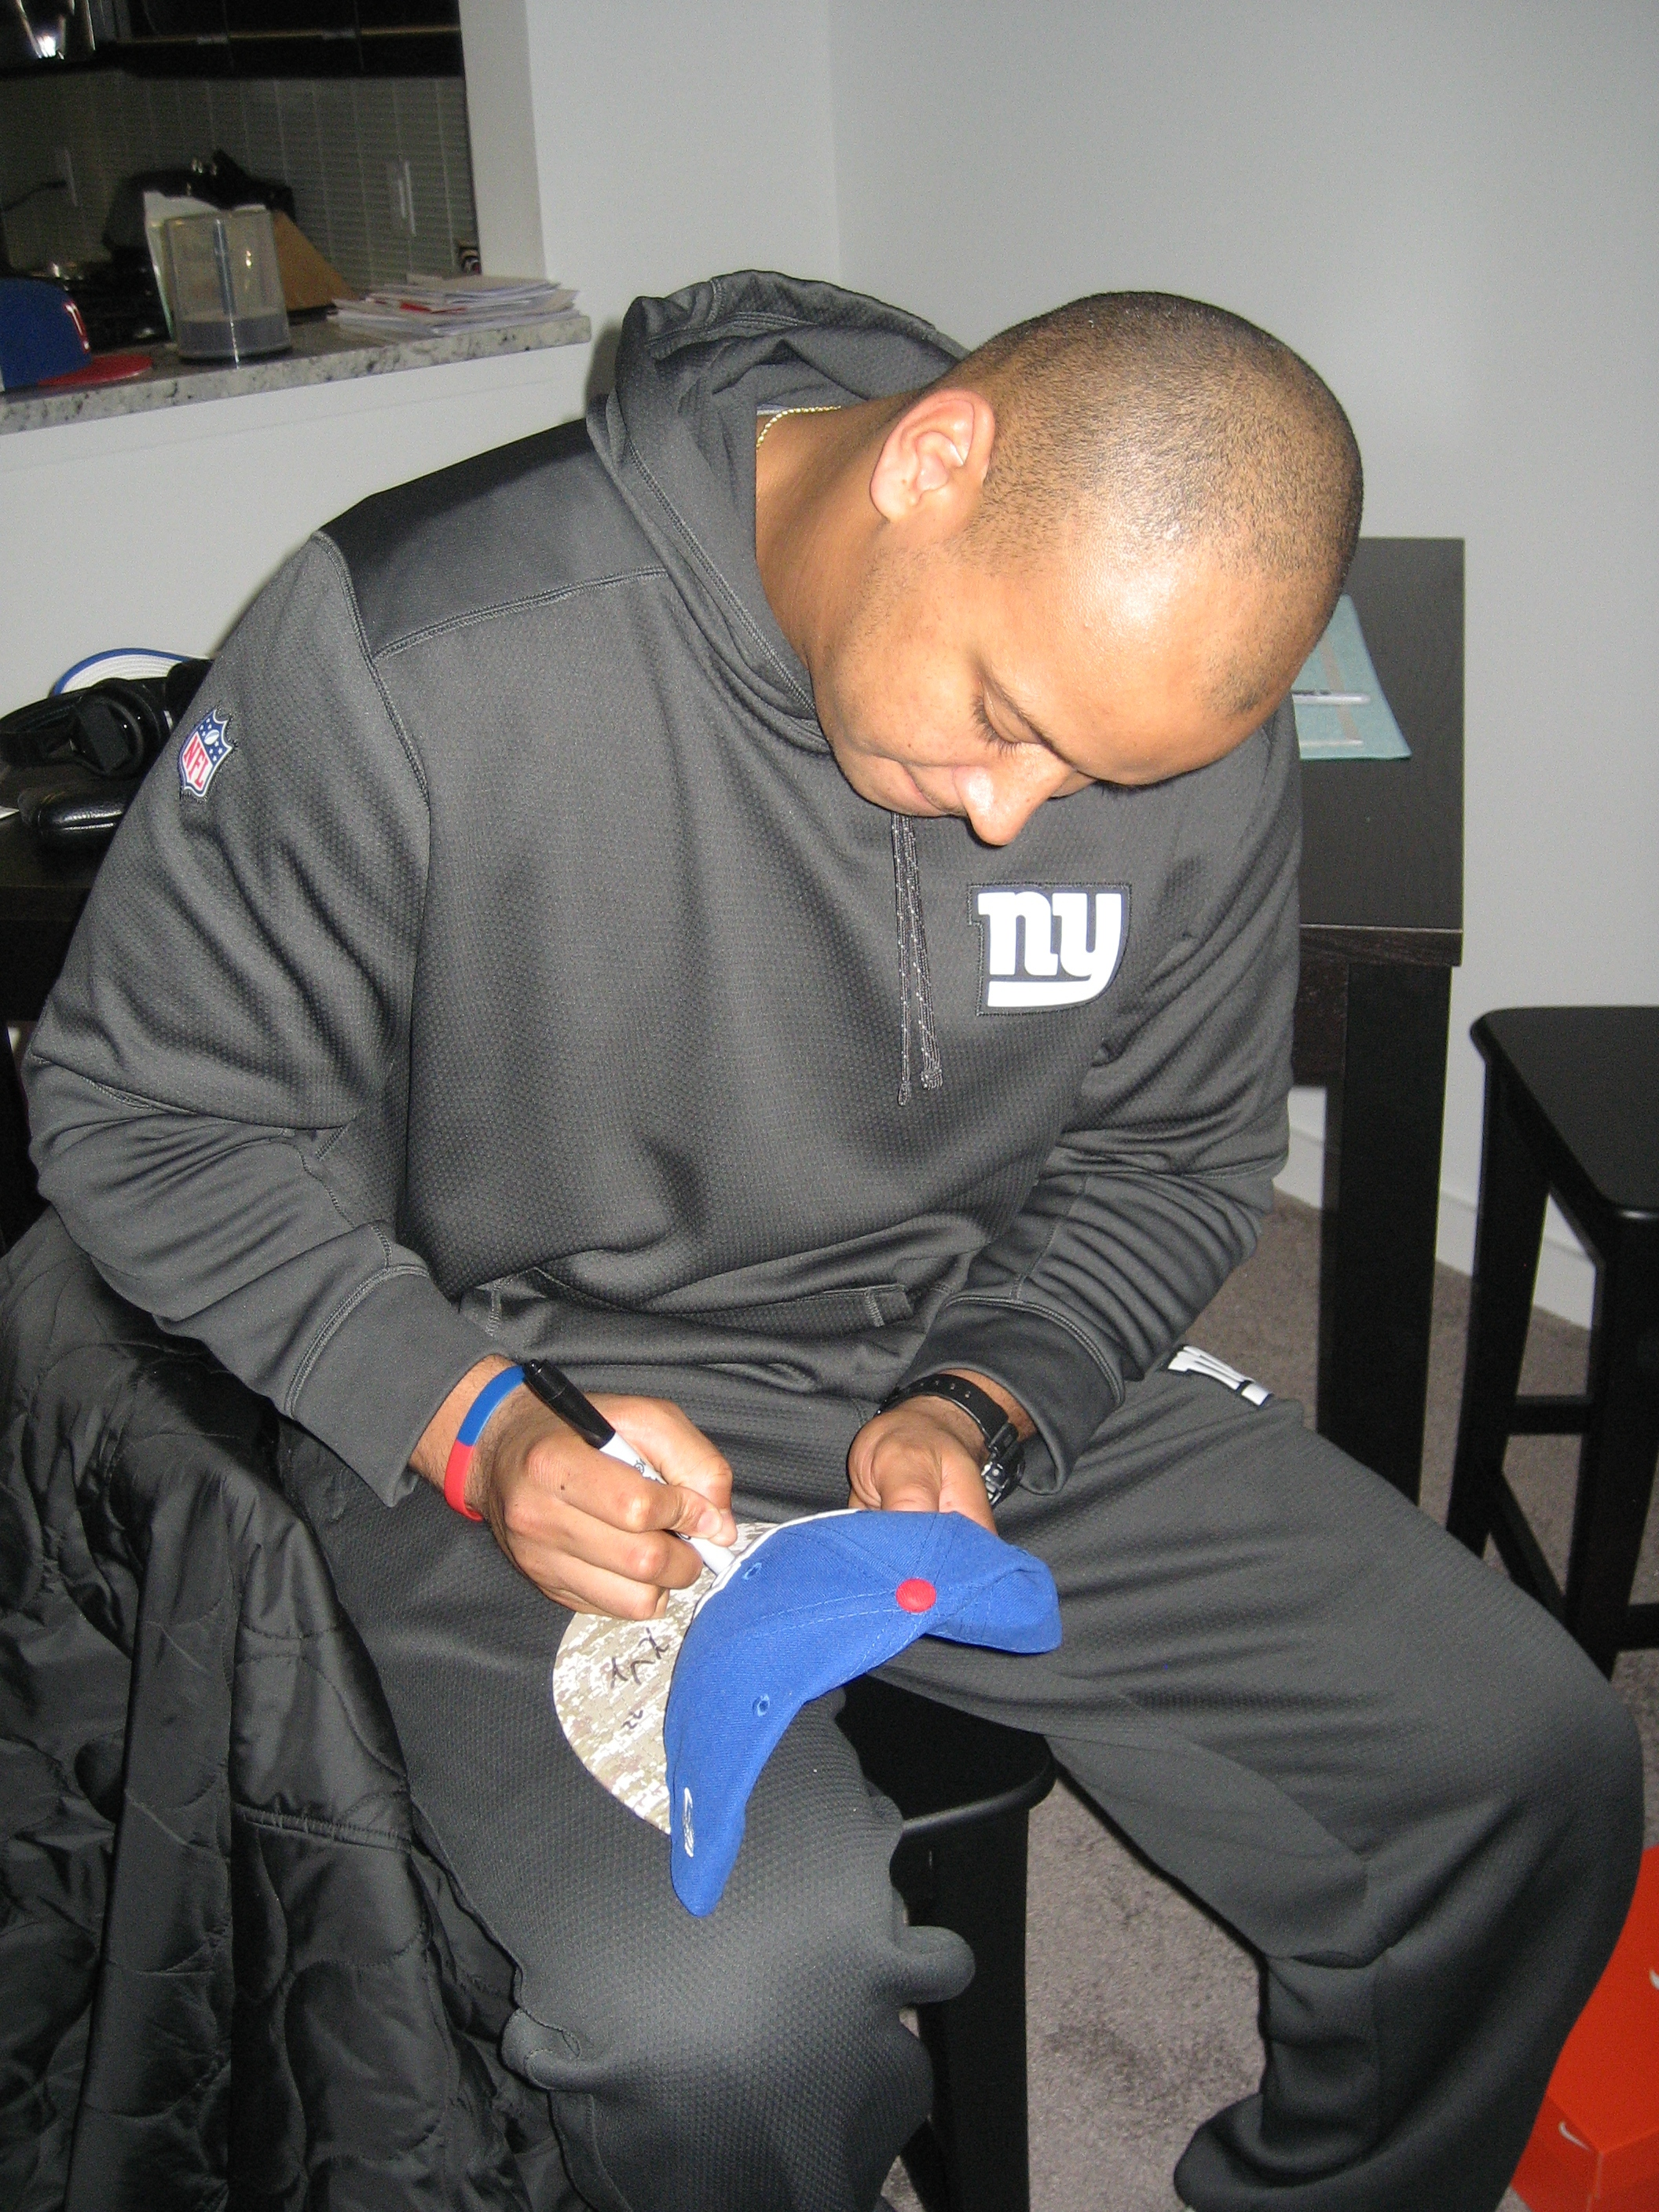 sale retailer 1e9f9 1f3cc Kerry Wynn Signed New York Giants Salute to Service New Era Hat - Inscribed  Support The Troops!